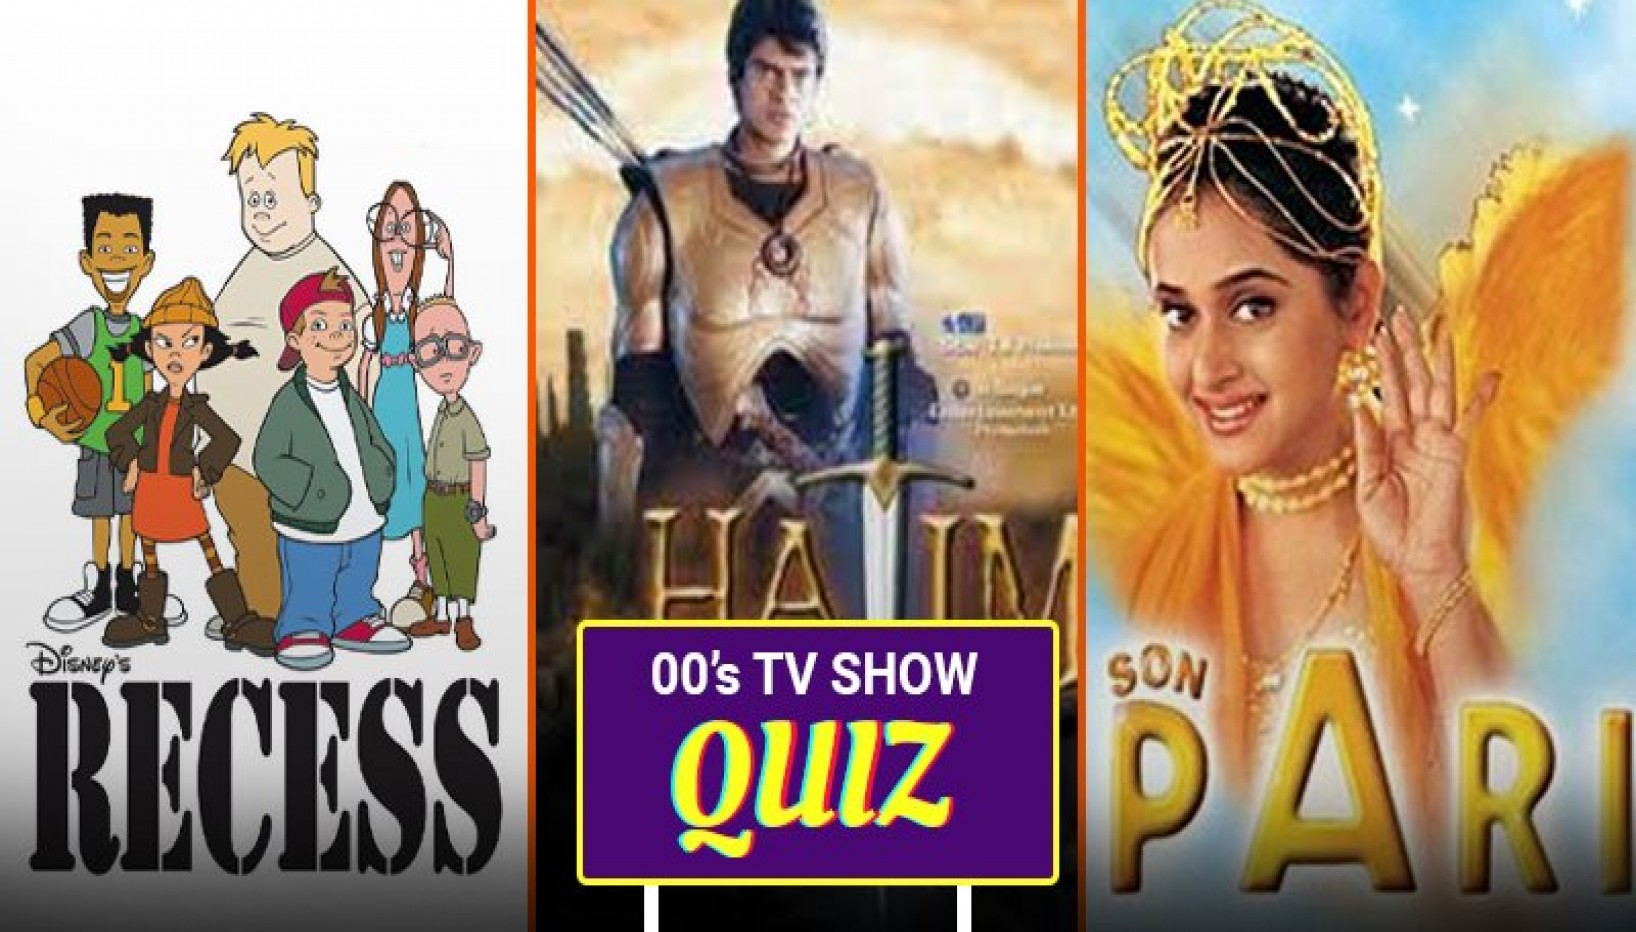 00s TV Show Quiz That Will Take You Back To Your Childhood Days